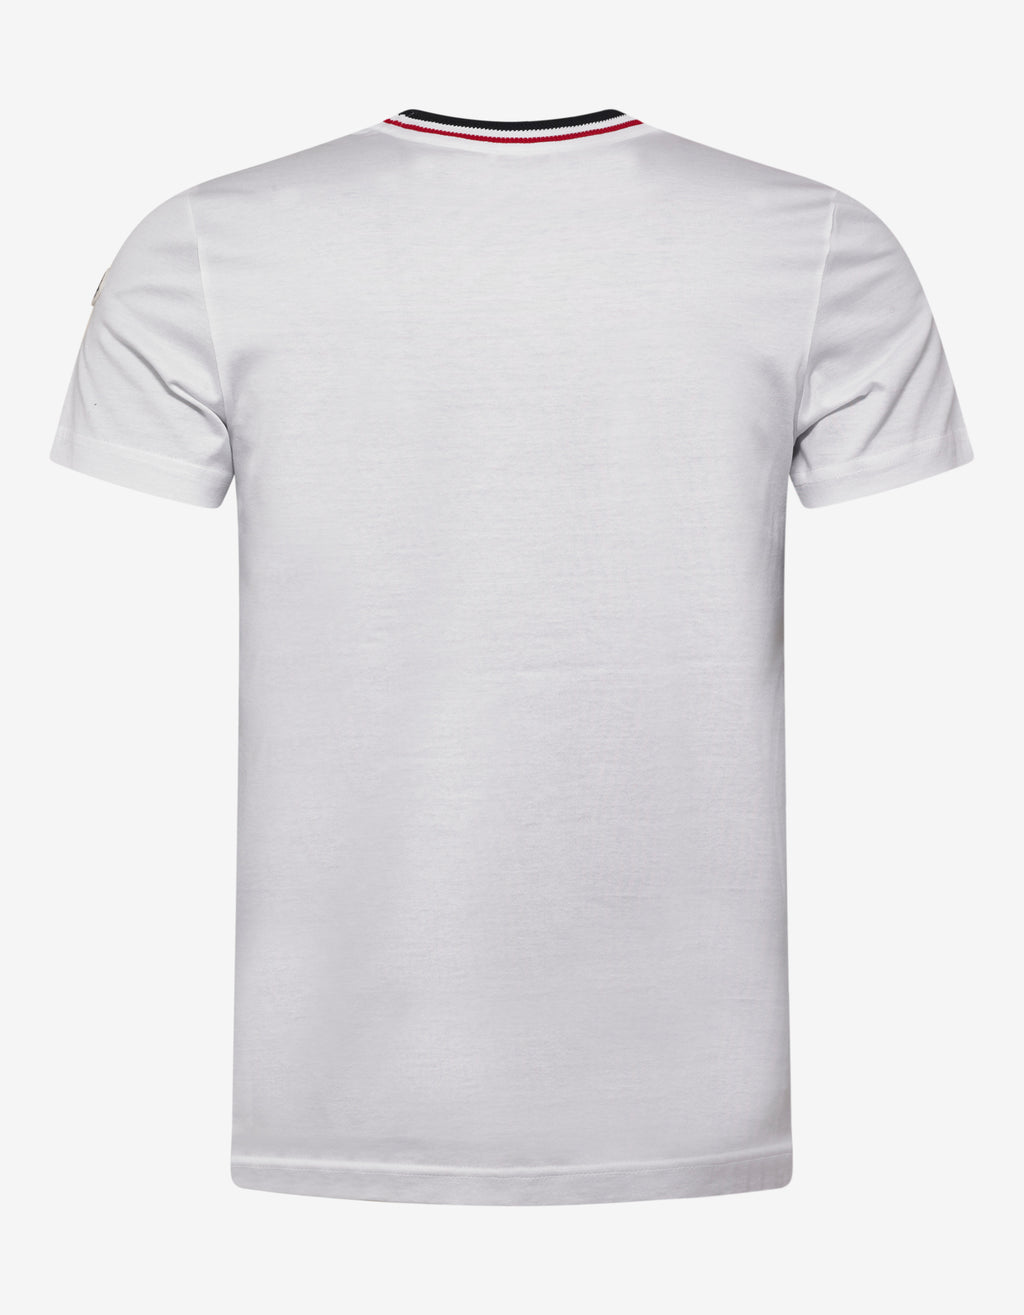 White Contrast Collar T-Shirt